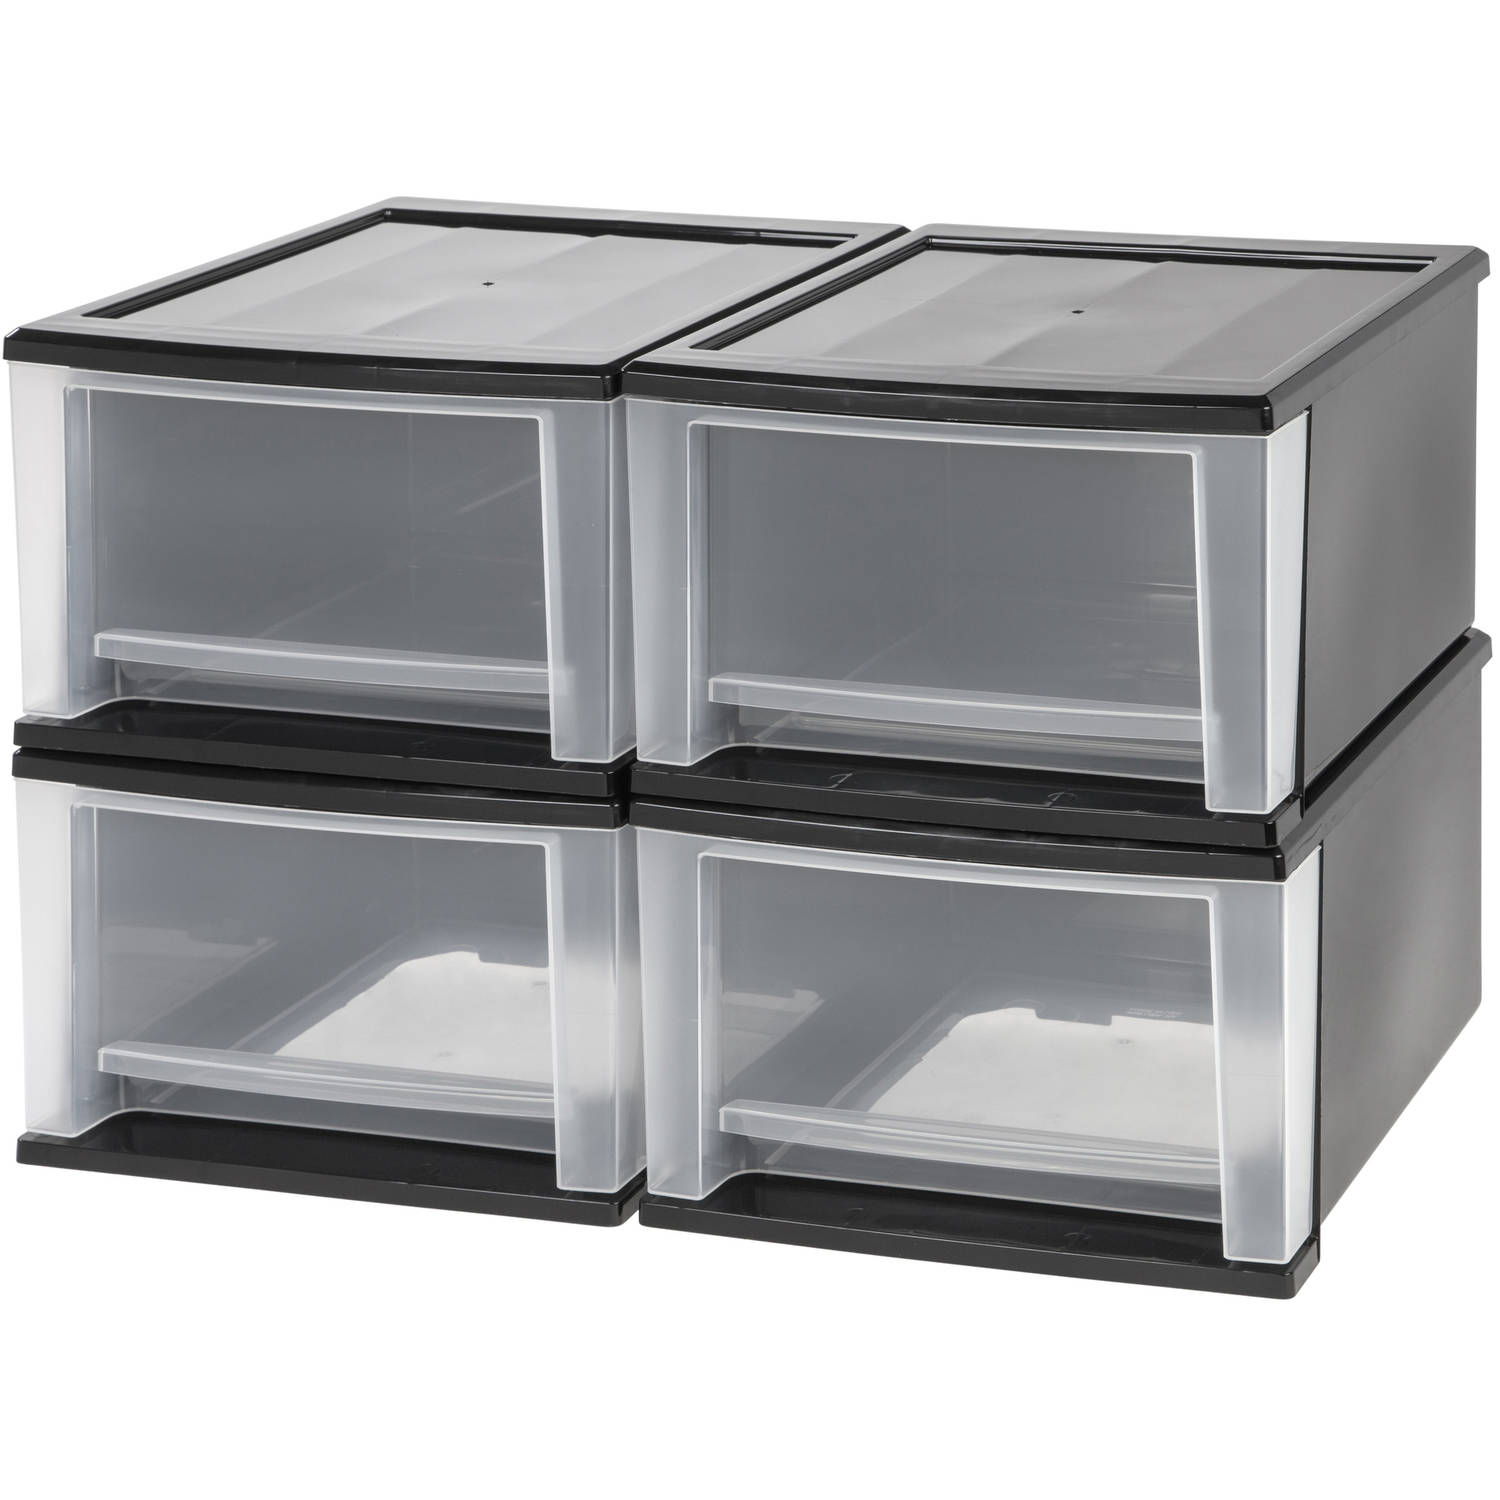 IRIS 17 Quart Stacking Drawer, 4 Pack